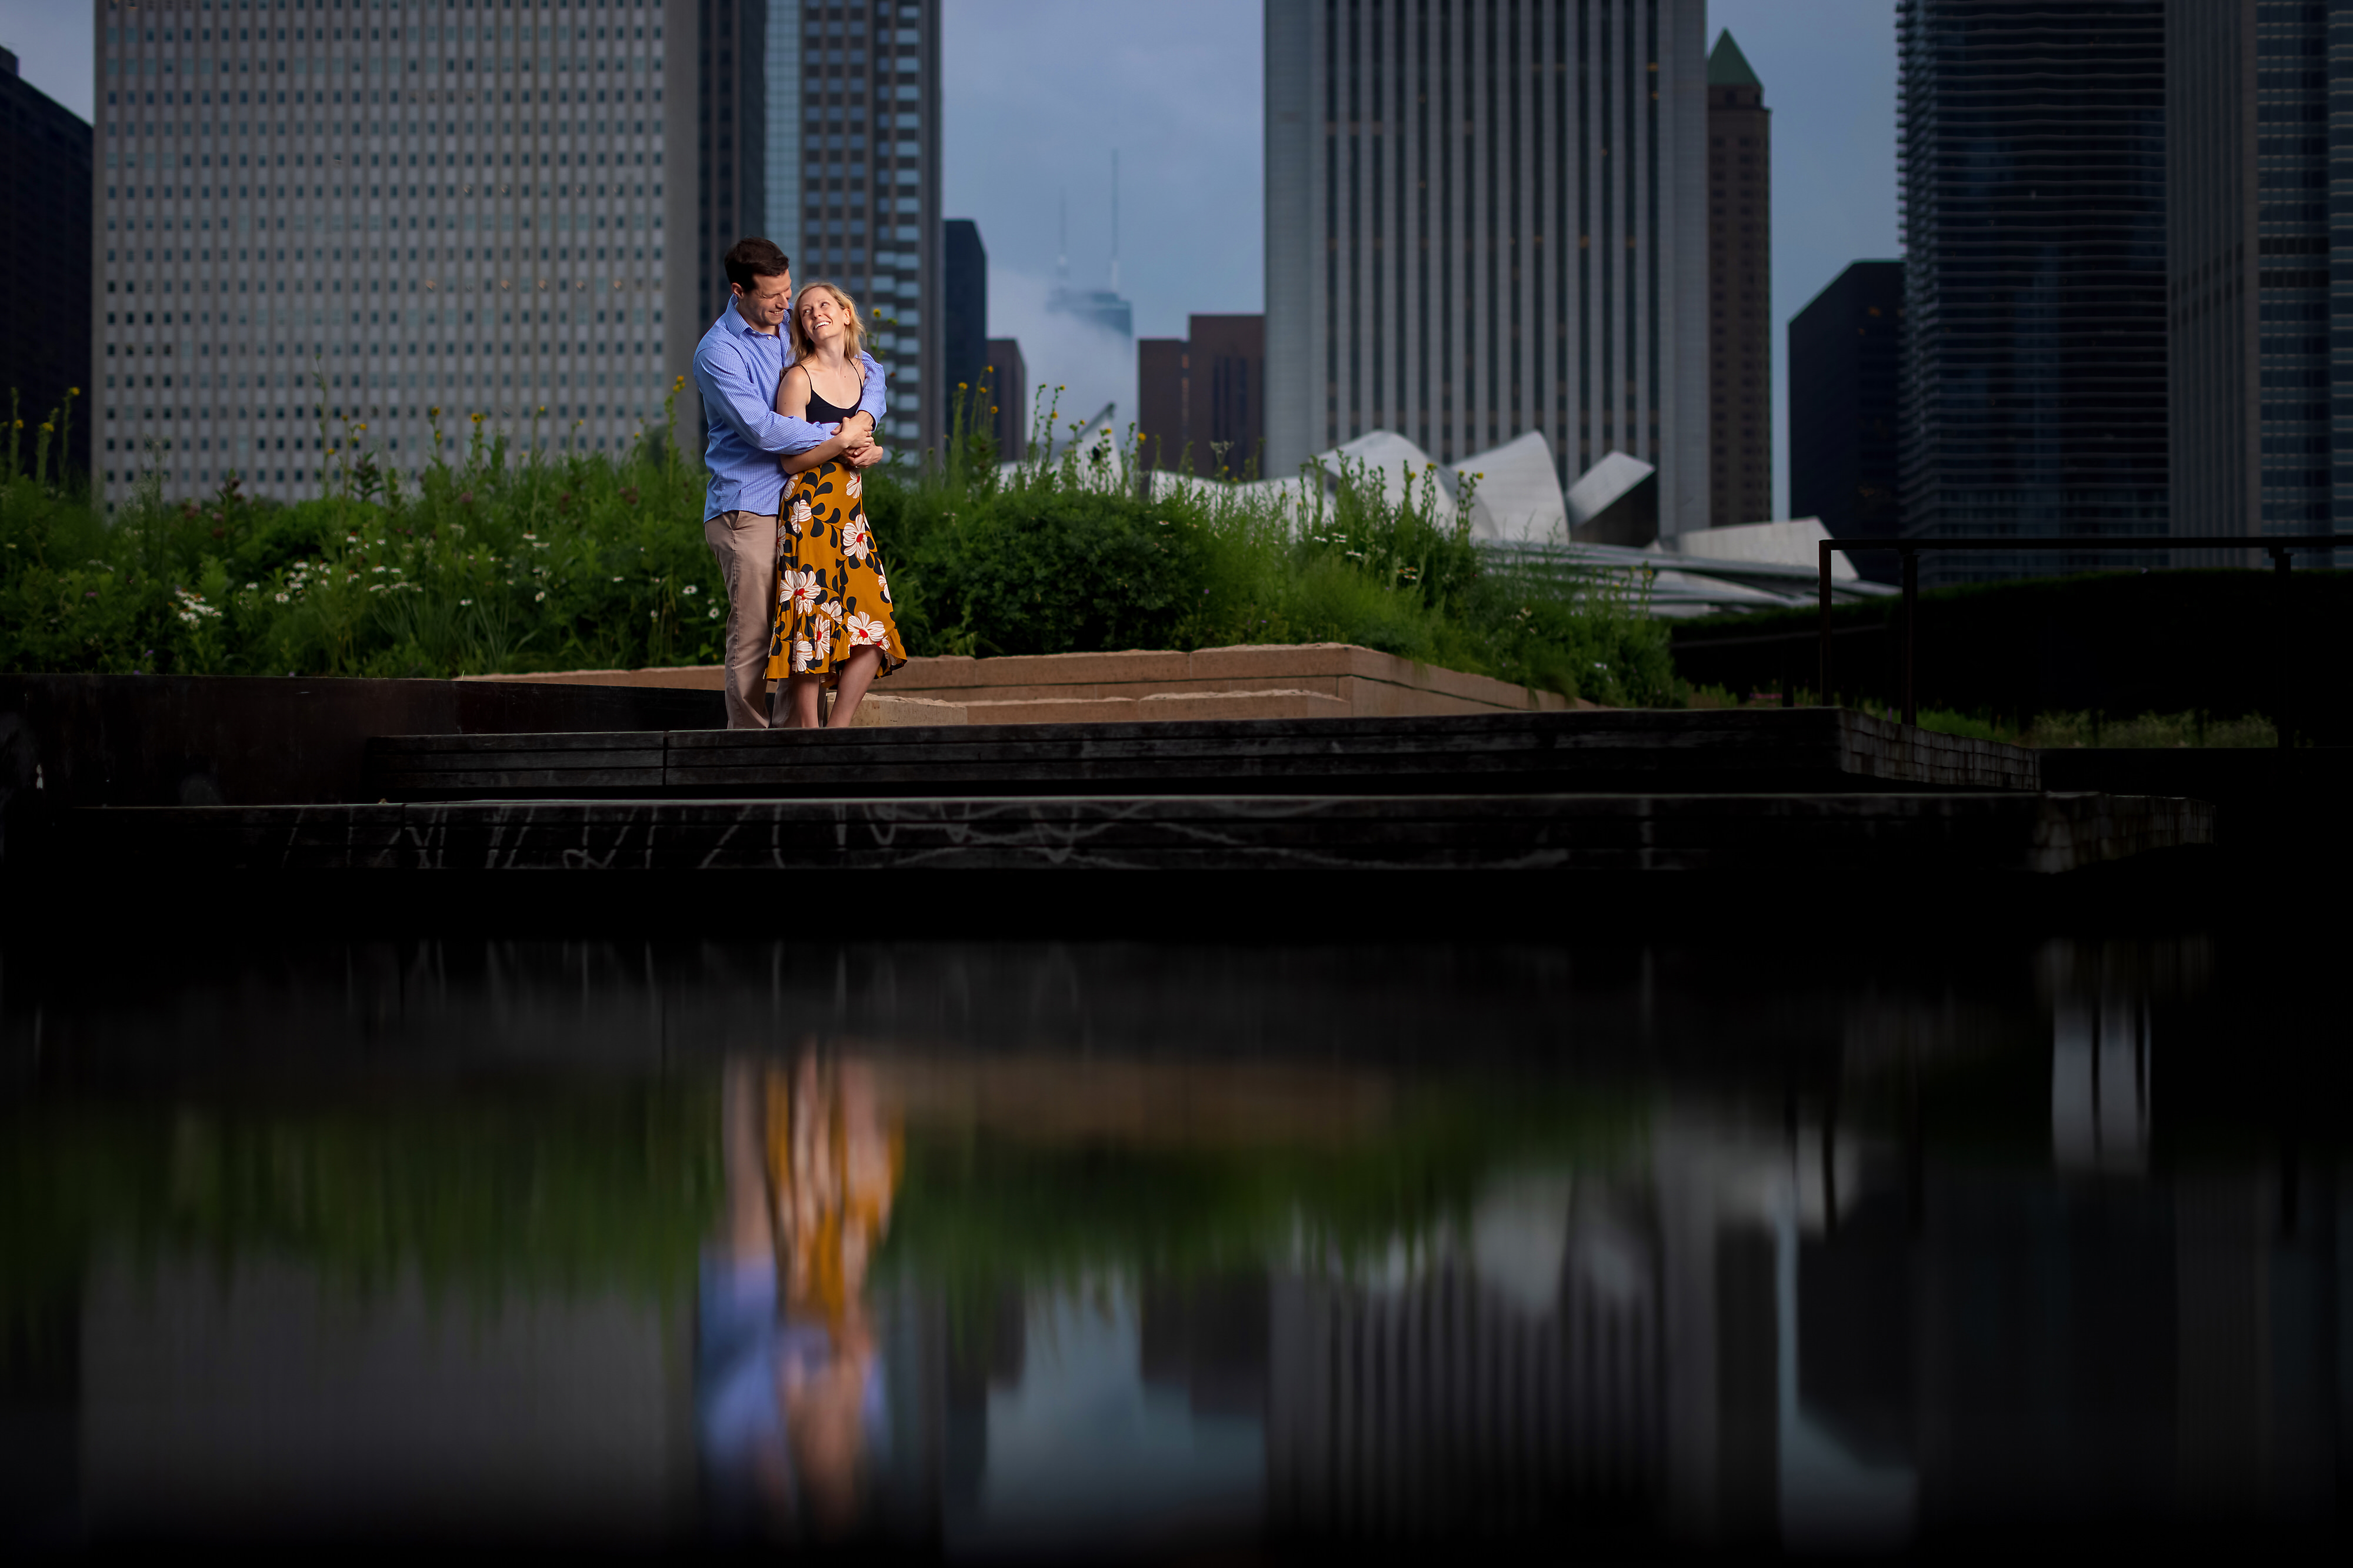 Couple poses with reflection pond and Hancock building in the background during engagement session in Lurie Garden